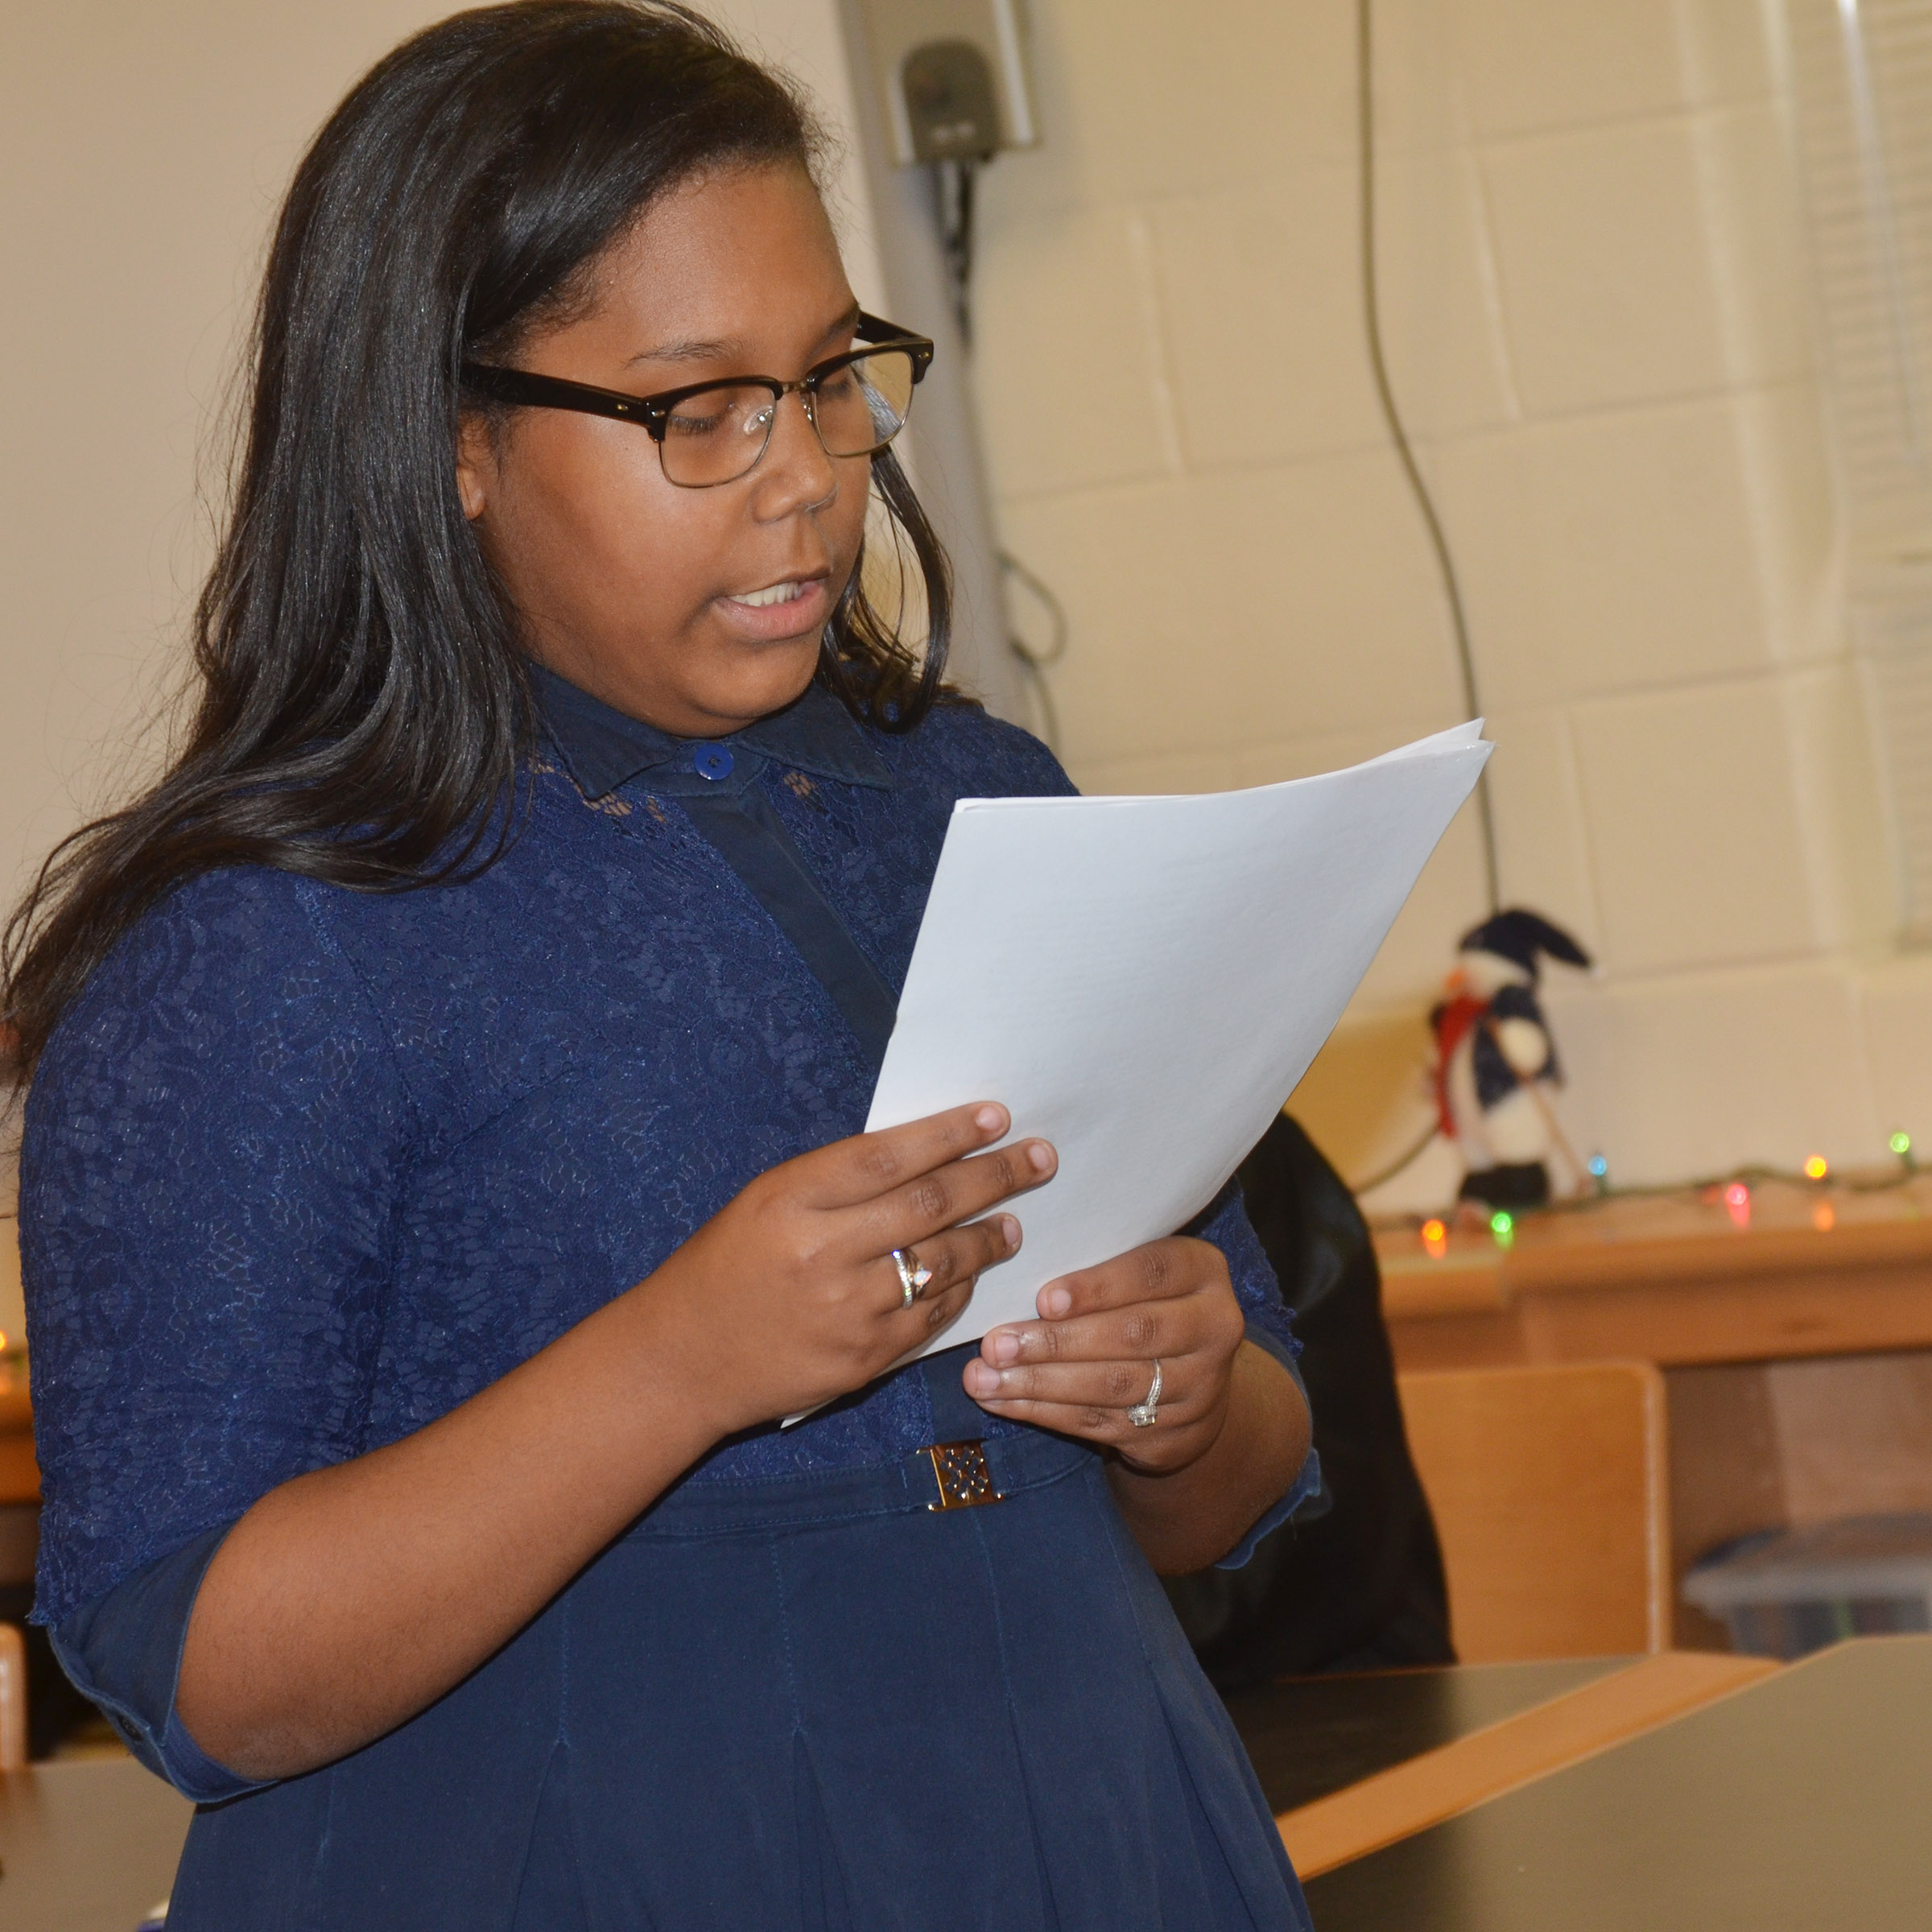 CHS sophomore Zaria Cowan, portraying a defense attorney, questions a witness.